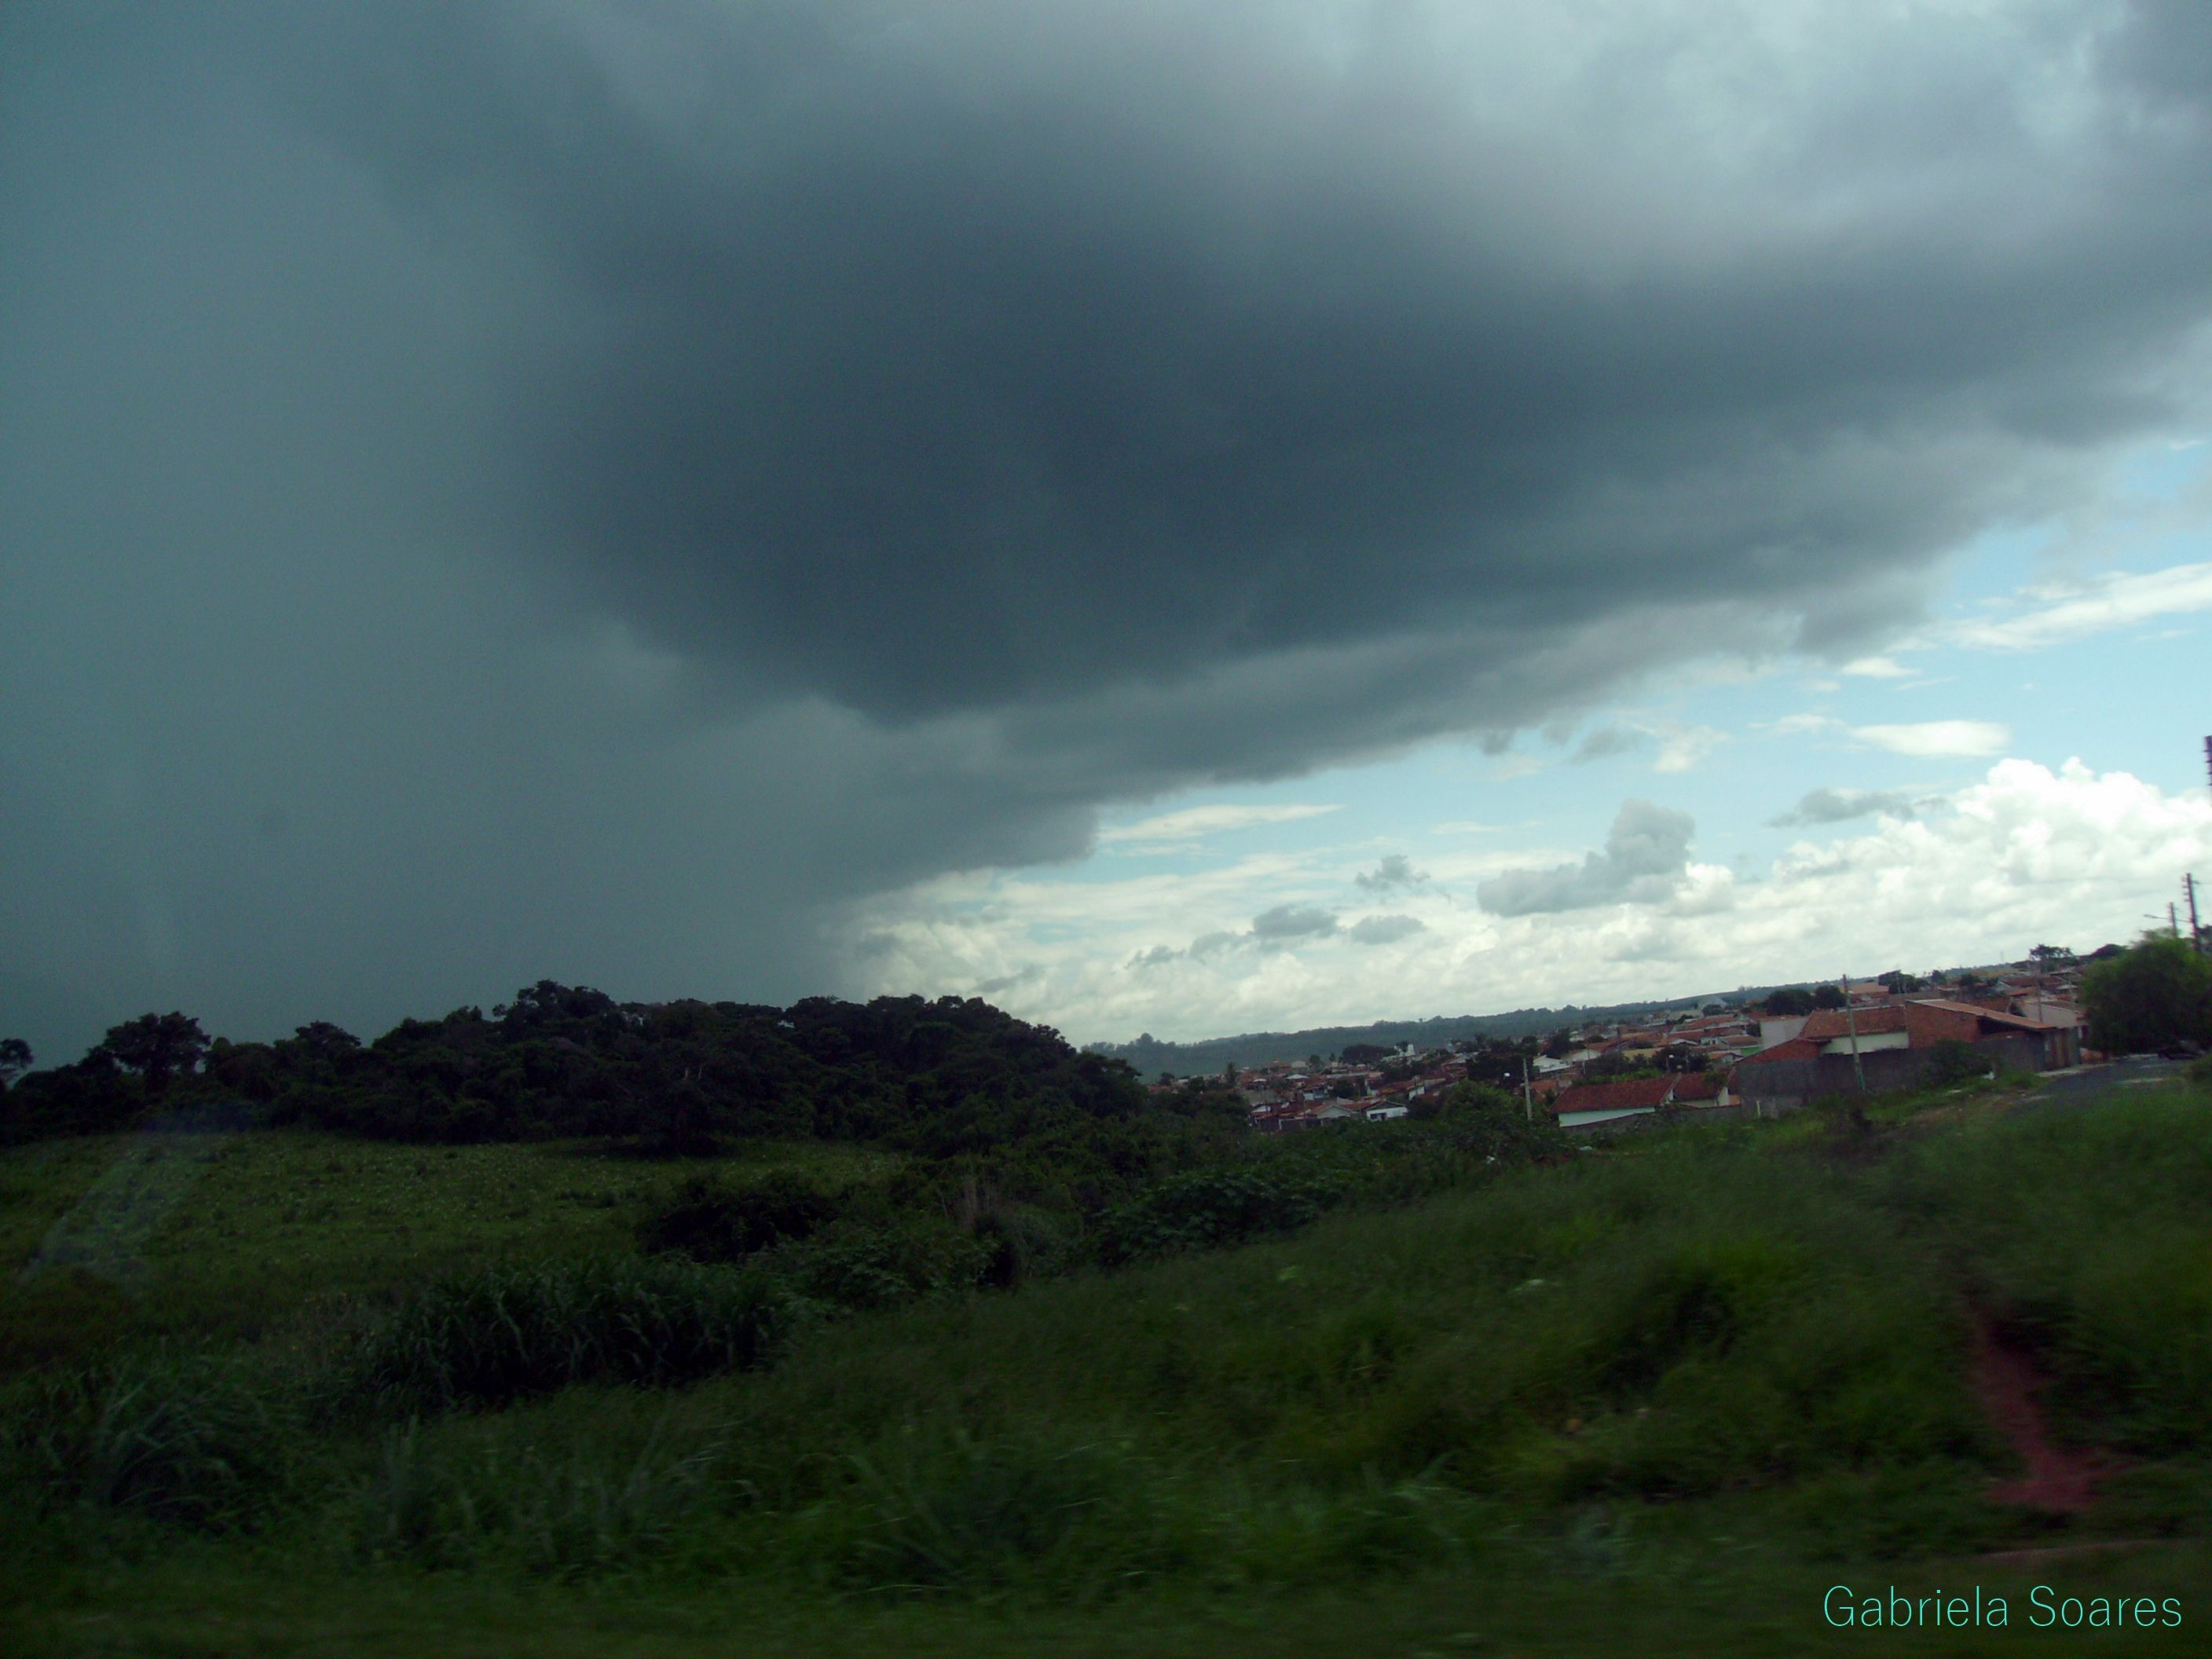 The rain is coming